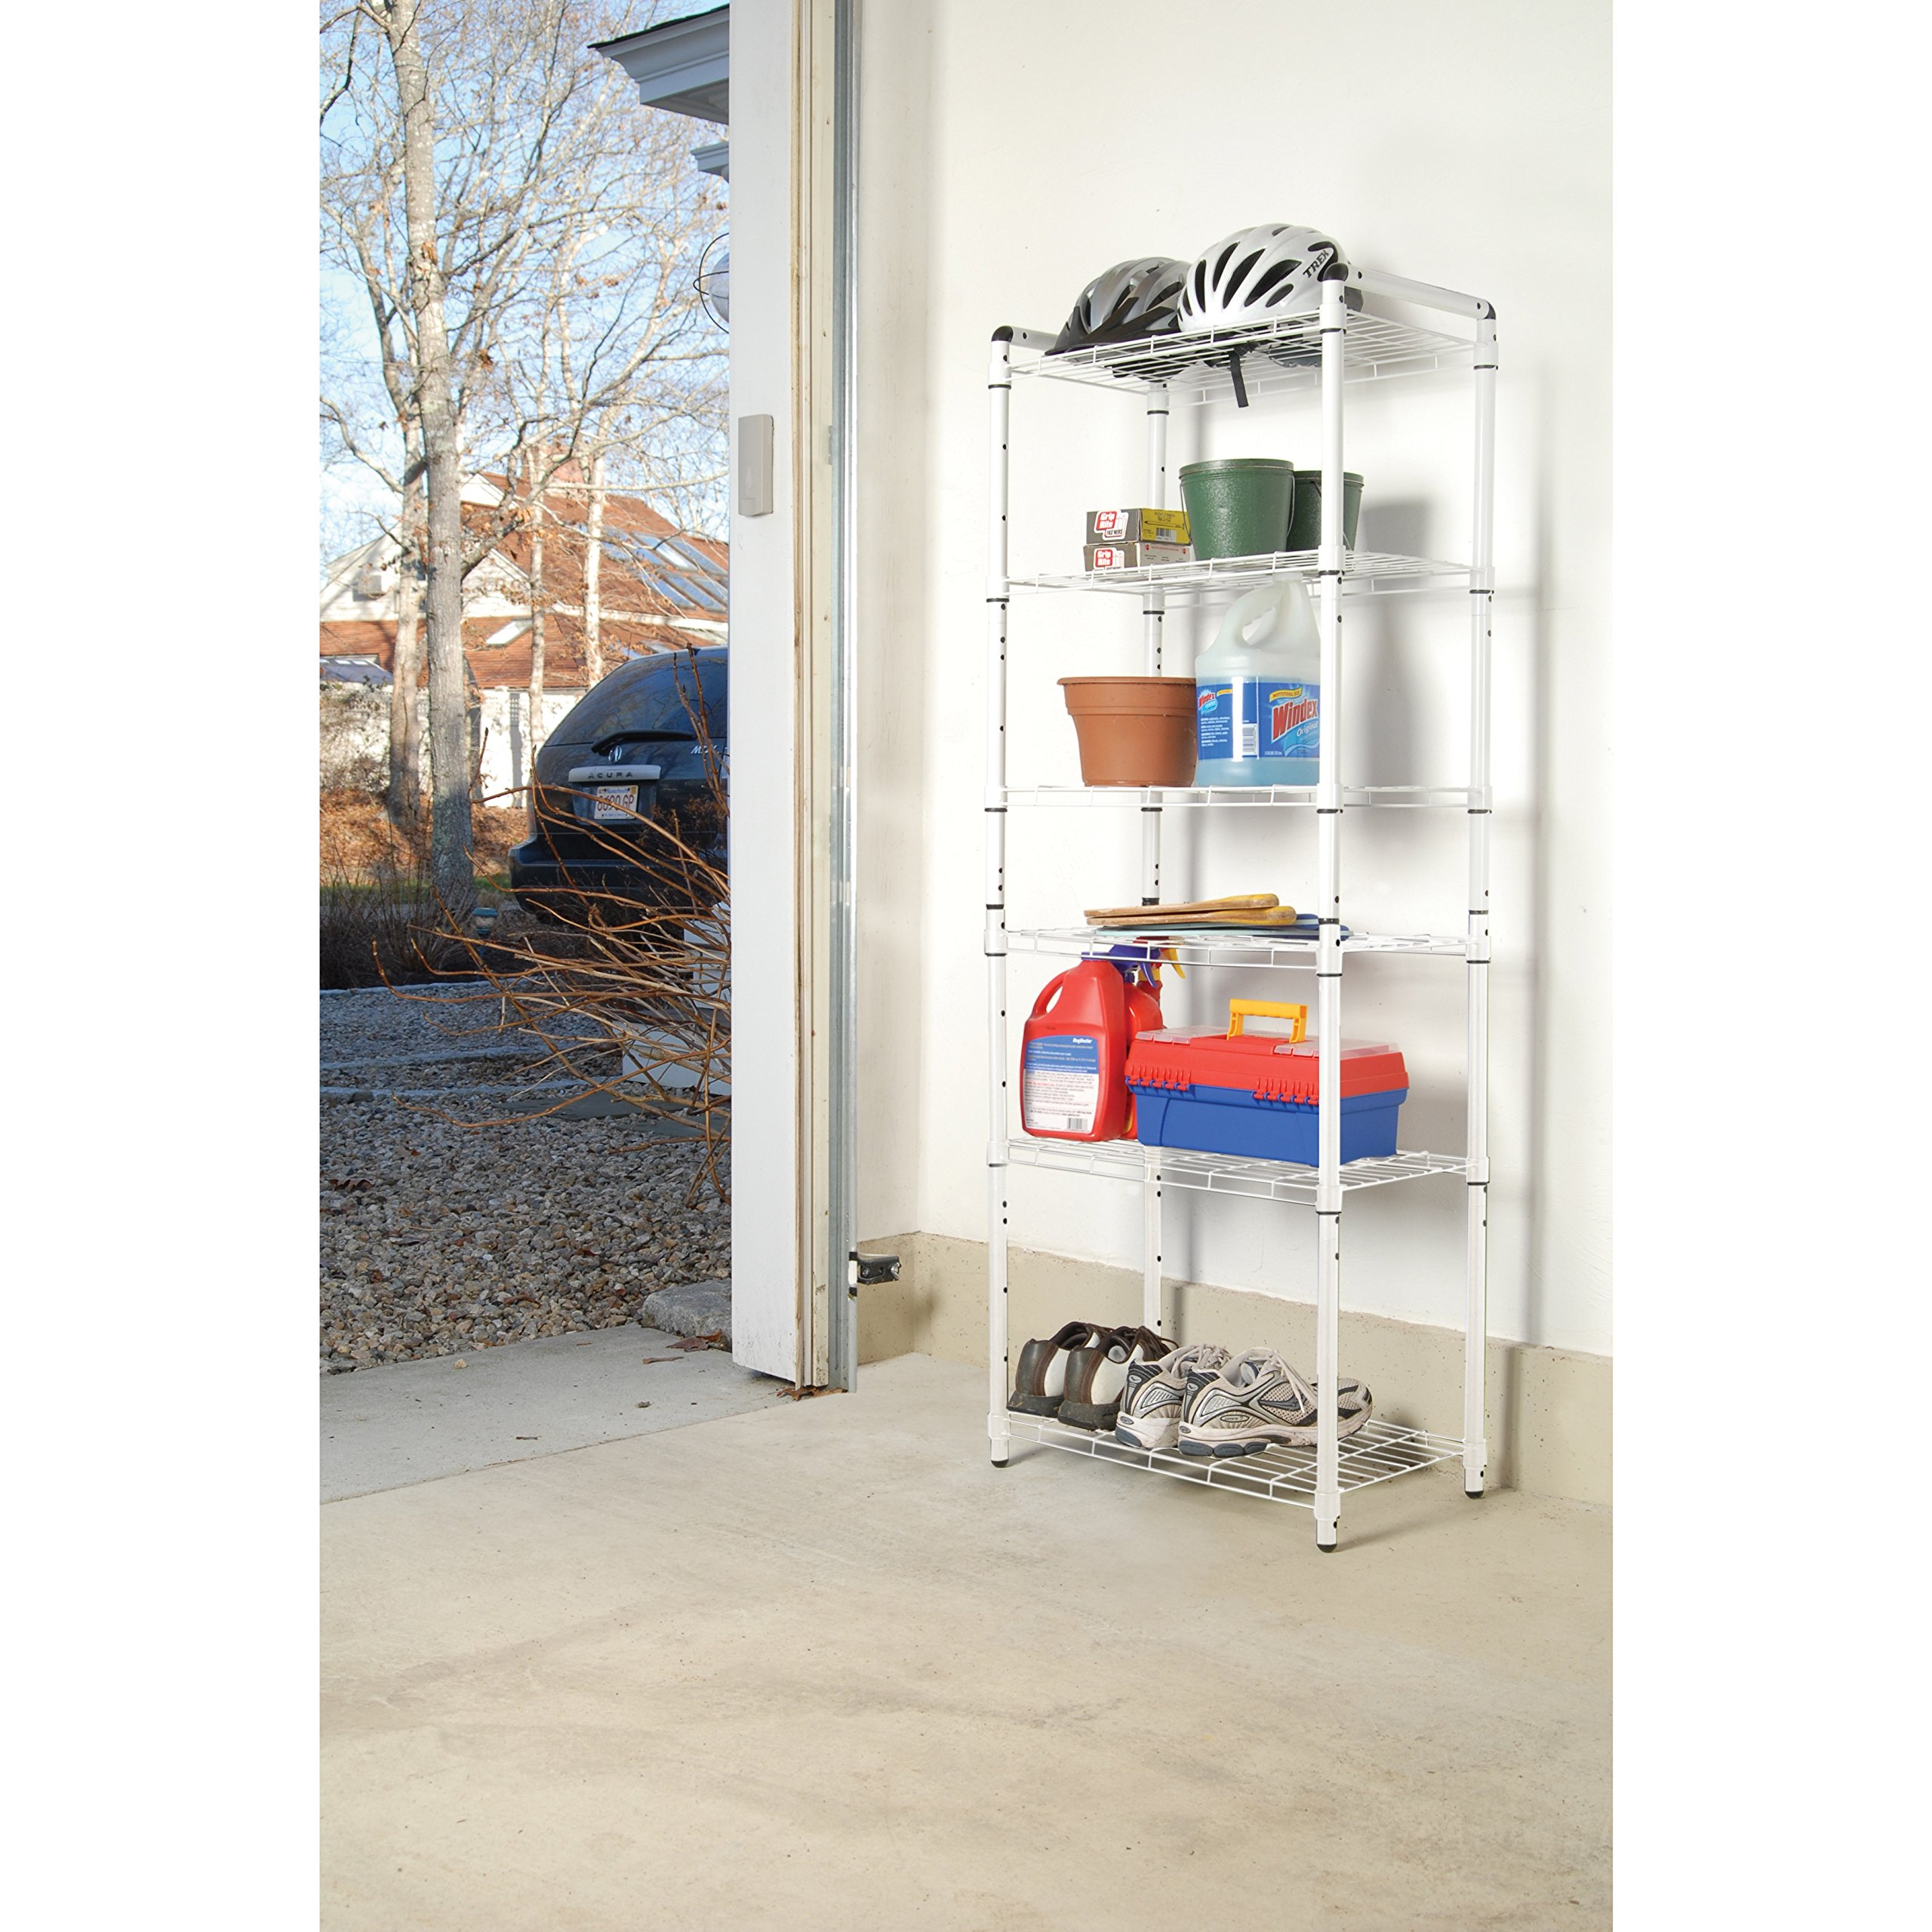 The Art of Storage White Steel 3-tier Quick Rack (Set of 2) by The Art of Storage (Image #2)